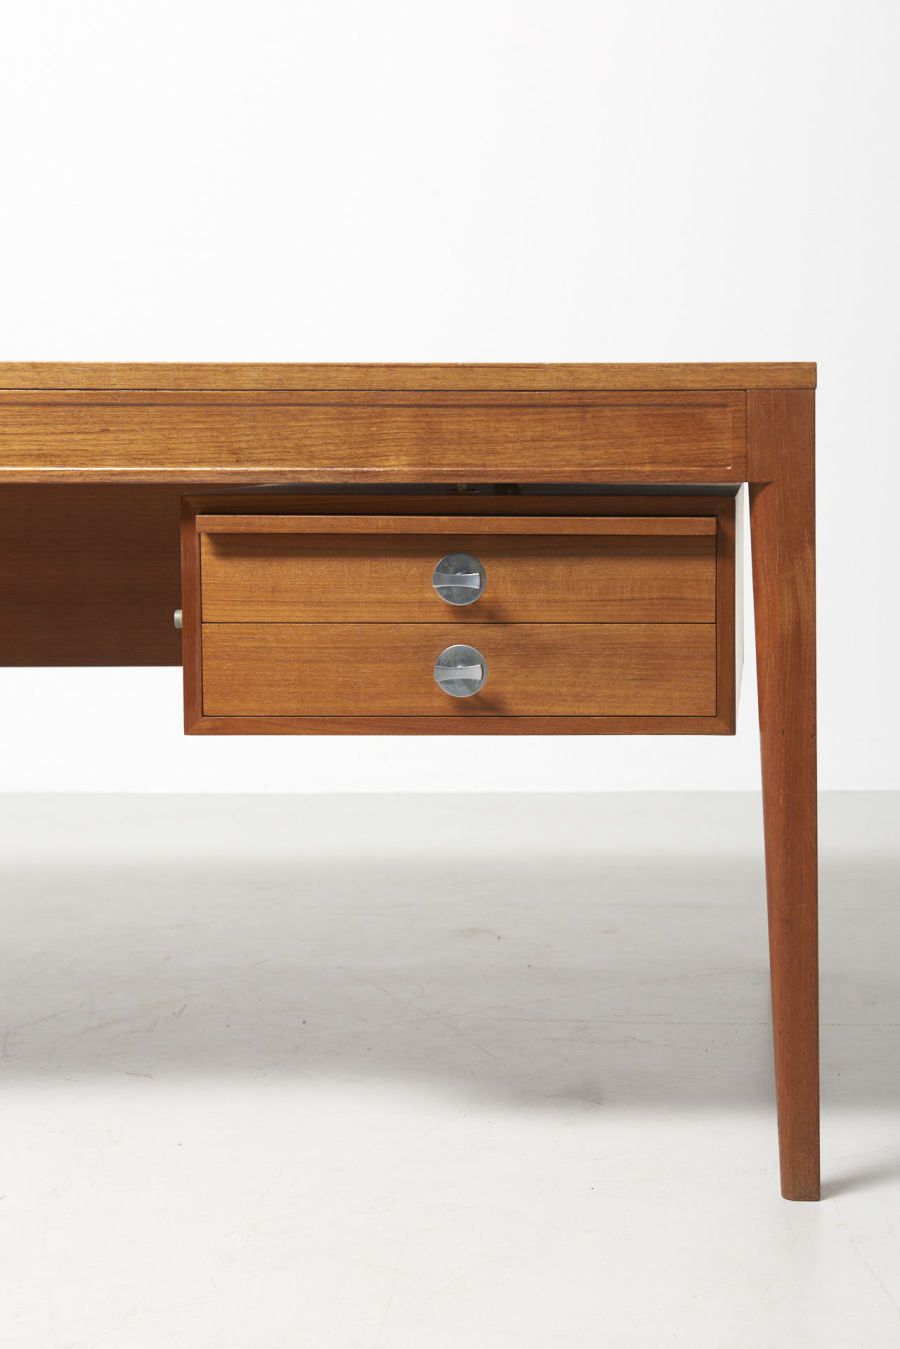 modestfurniture-vintage-2181-finn-juhl-diplomat-writing-desk03